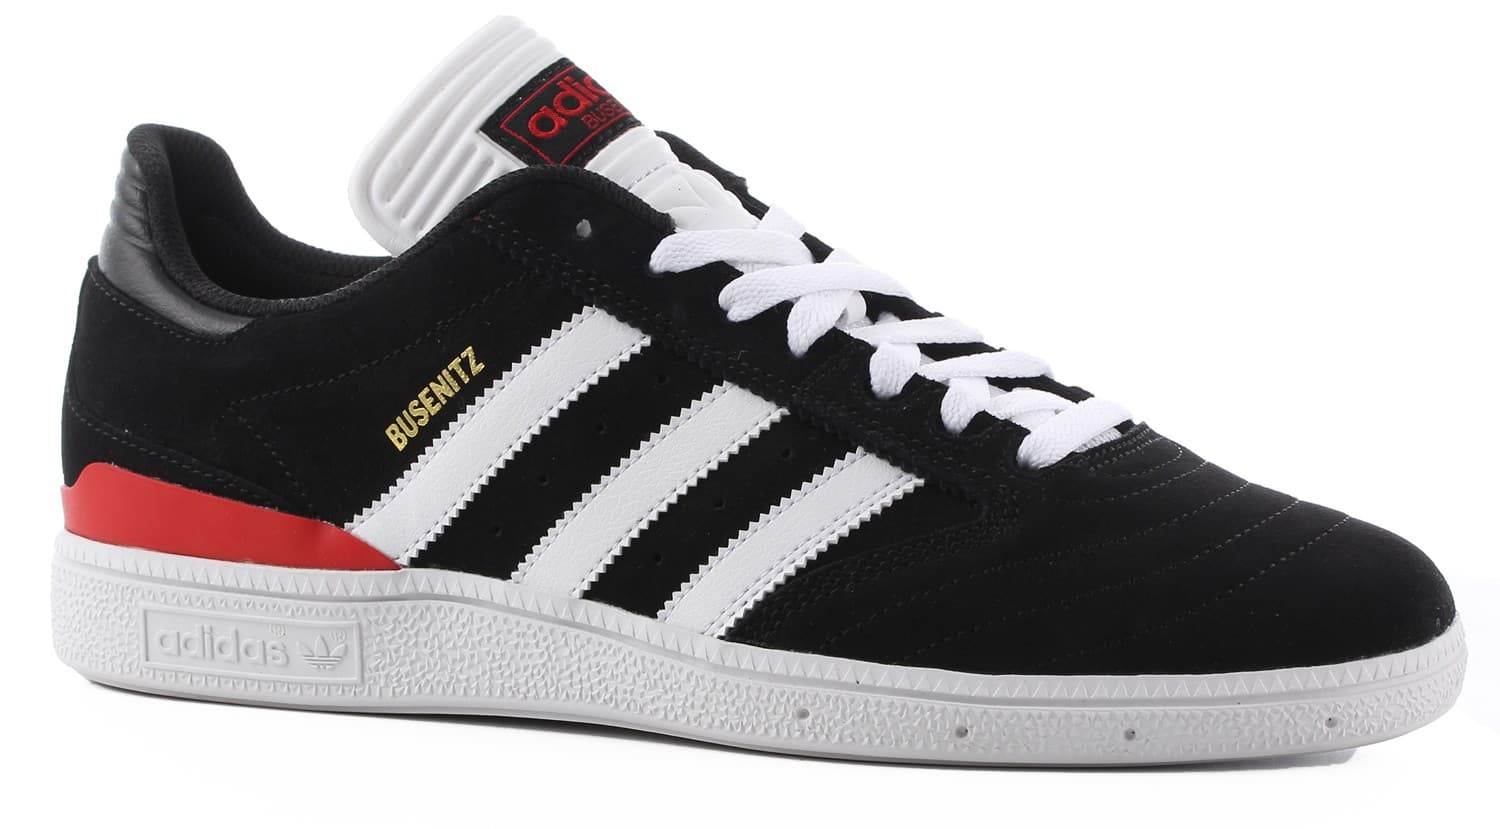 newest 09614 df26f Adidas Busenitz Pro Skate Shoes - Free Shipping  Tactics